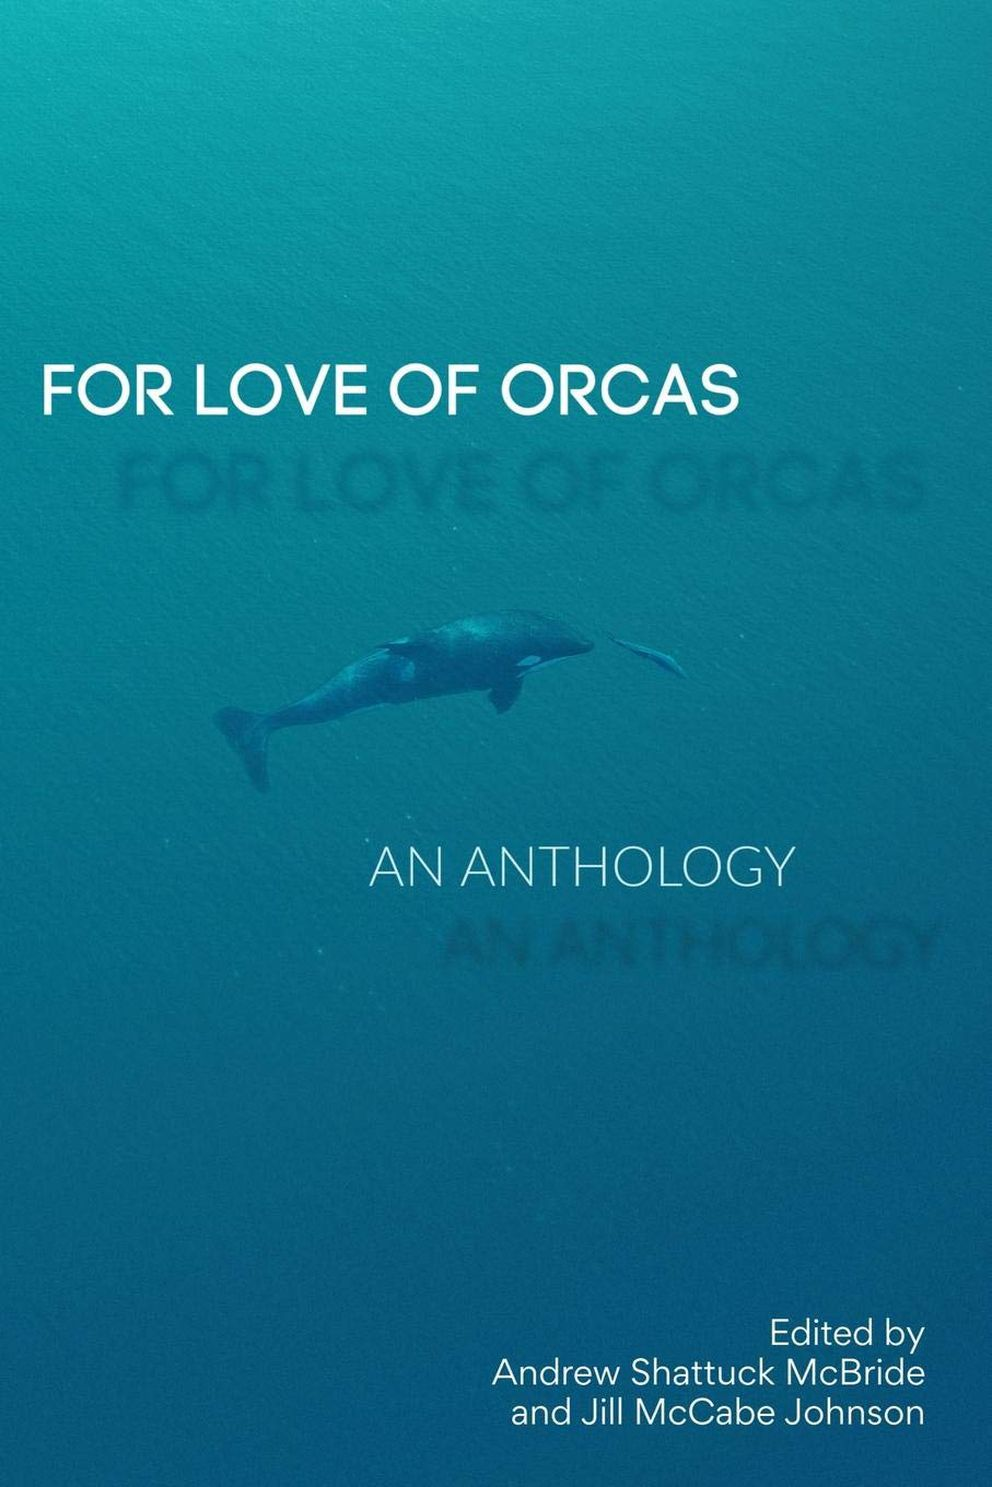 'For Love of Orcas: An Anthology, ' edited by Andrew Shattuck McBride and Jill McCabe Johnson.